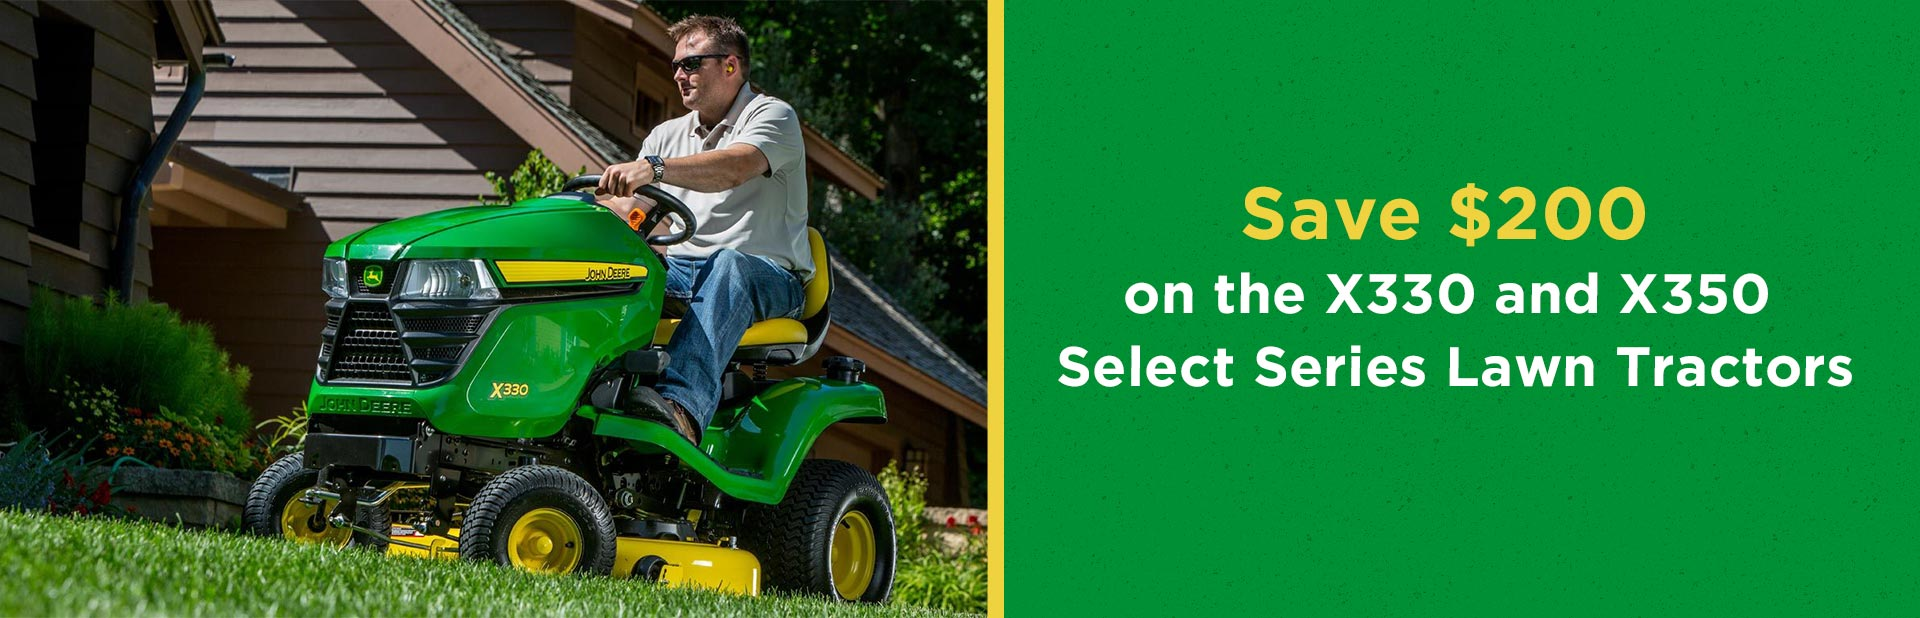 Save $200 on the John Deere X330 and X350 Select Series Lawn Tractors: Click here for details.